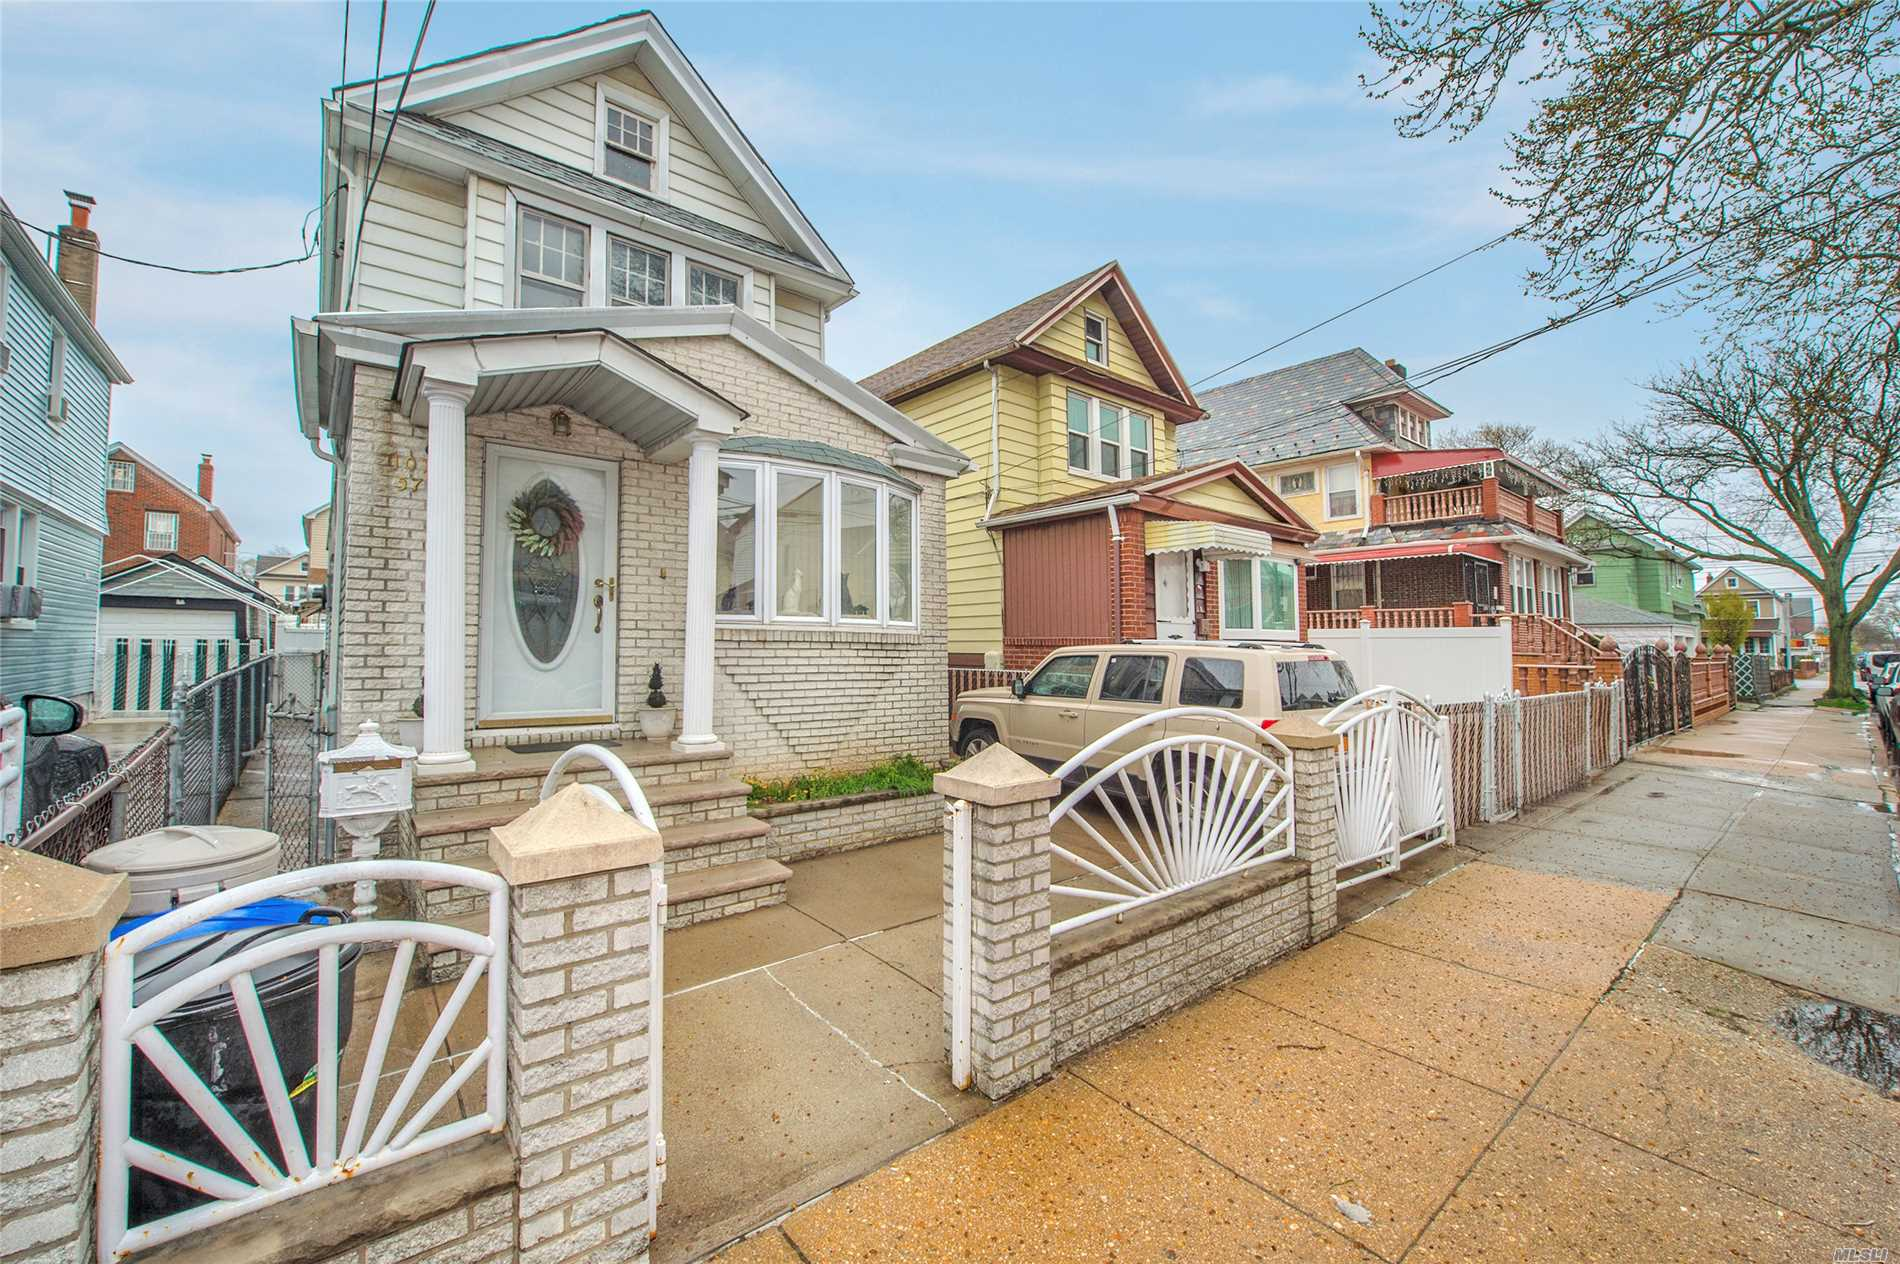 Excellent One Family With 3 Bedrooms, 2.5 Bath, Wooden Floors with Private Driveway And Garage. Basement Finished As Family Room With Separate Laundry Space. Attic For Plenty Of Storage Space. Close To All.